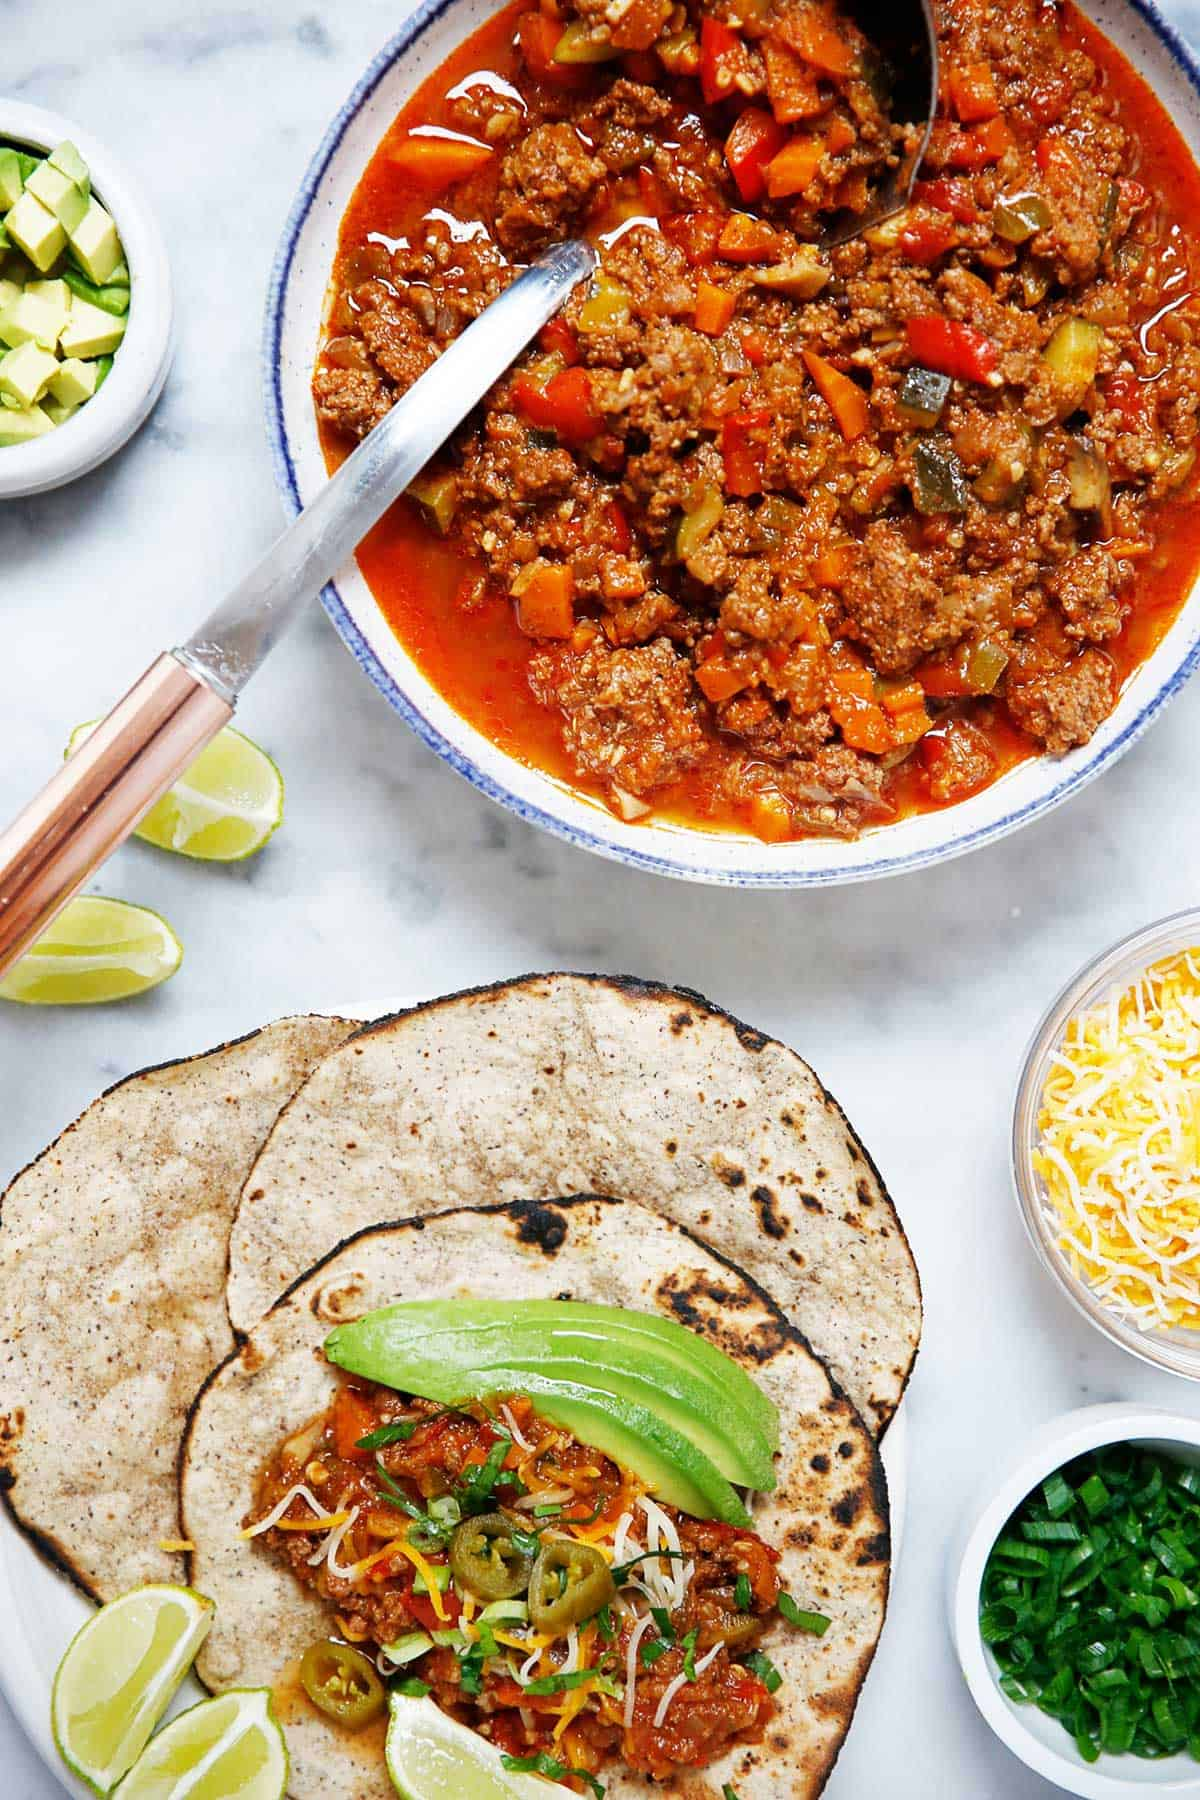 How To Make The BEST Taco Meat (In The Instant Pot!)